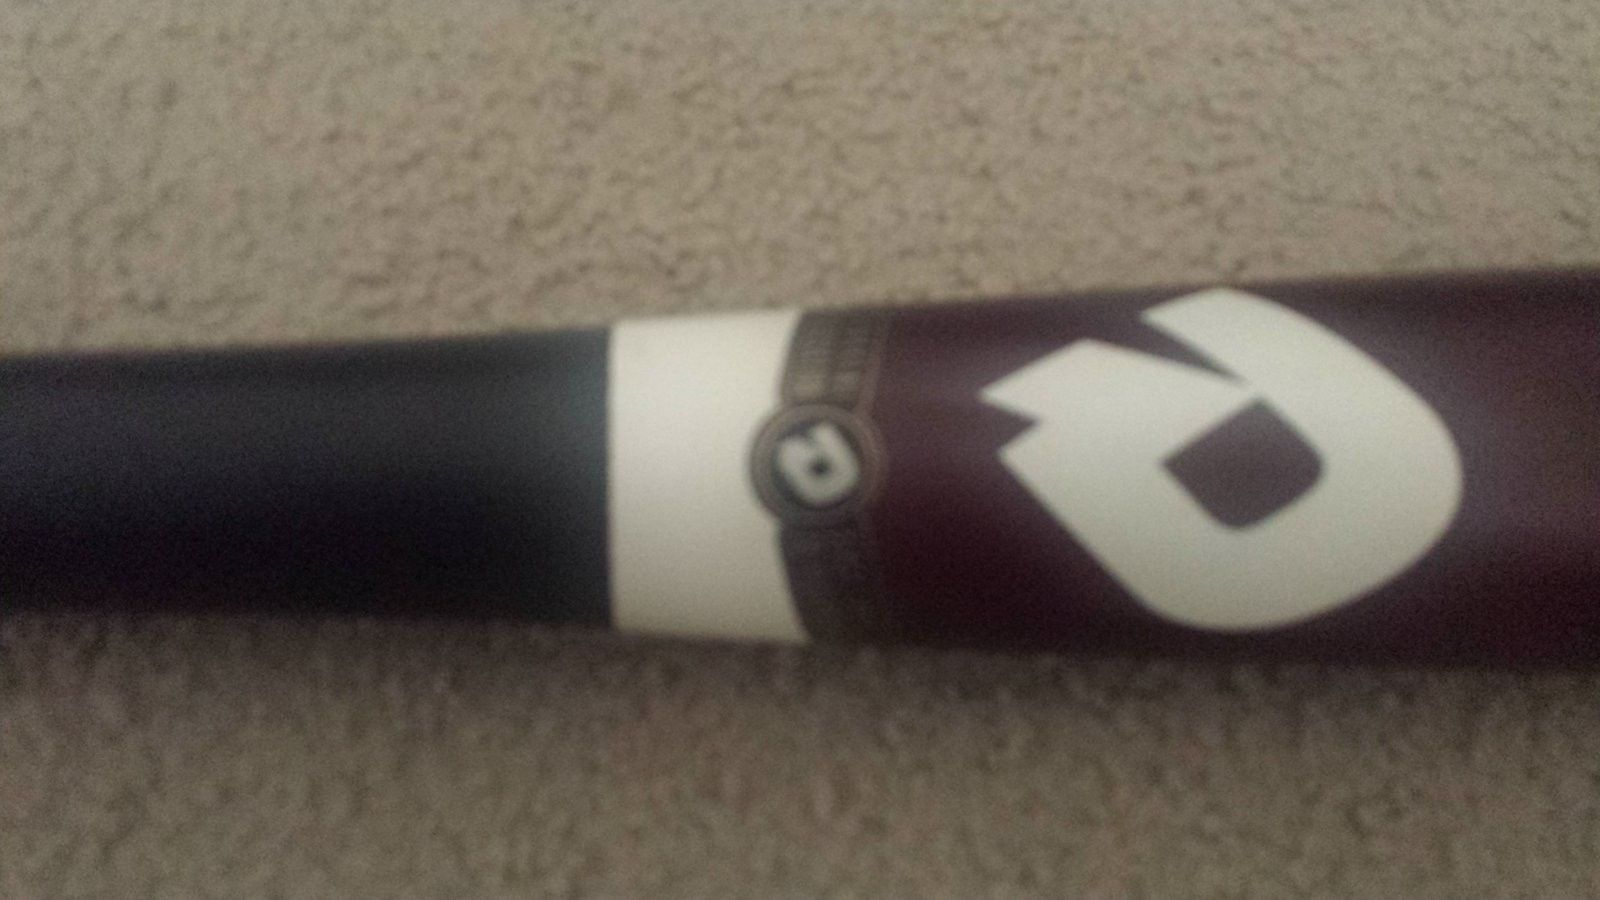 Oakley Baseball Bat - 20160602_114132.jpg